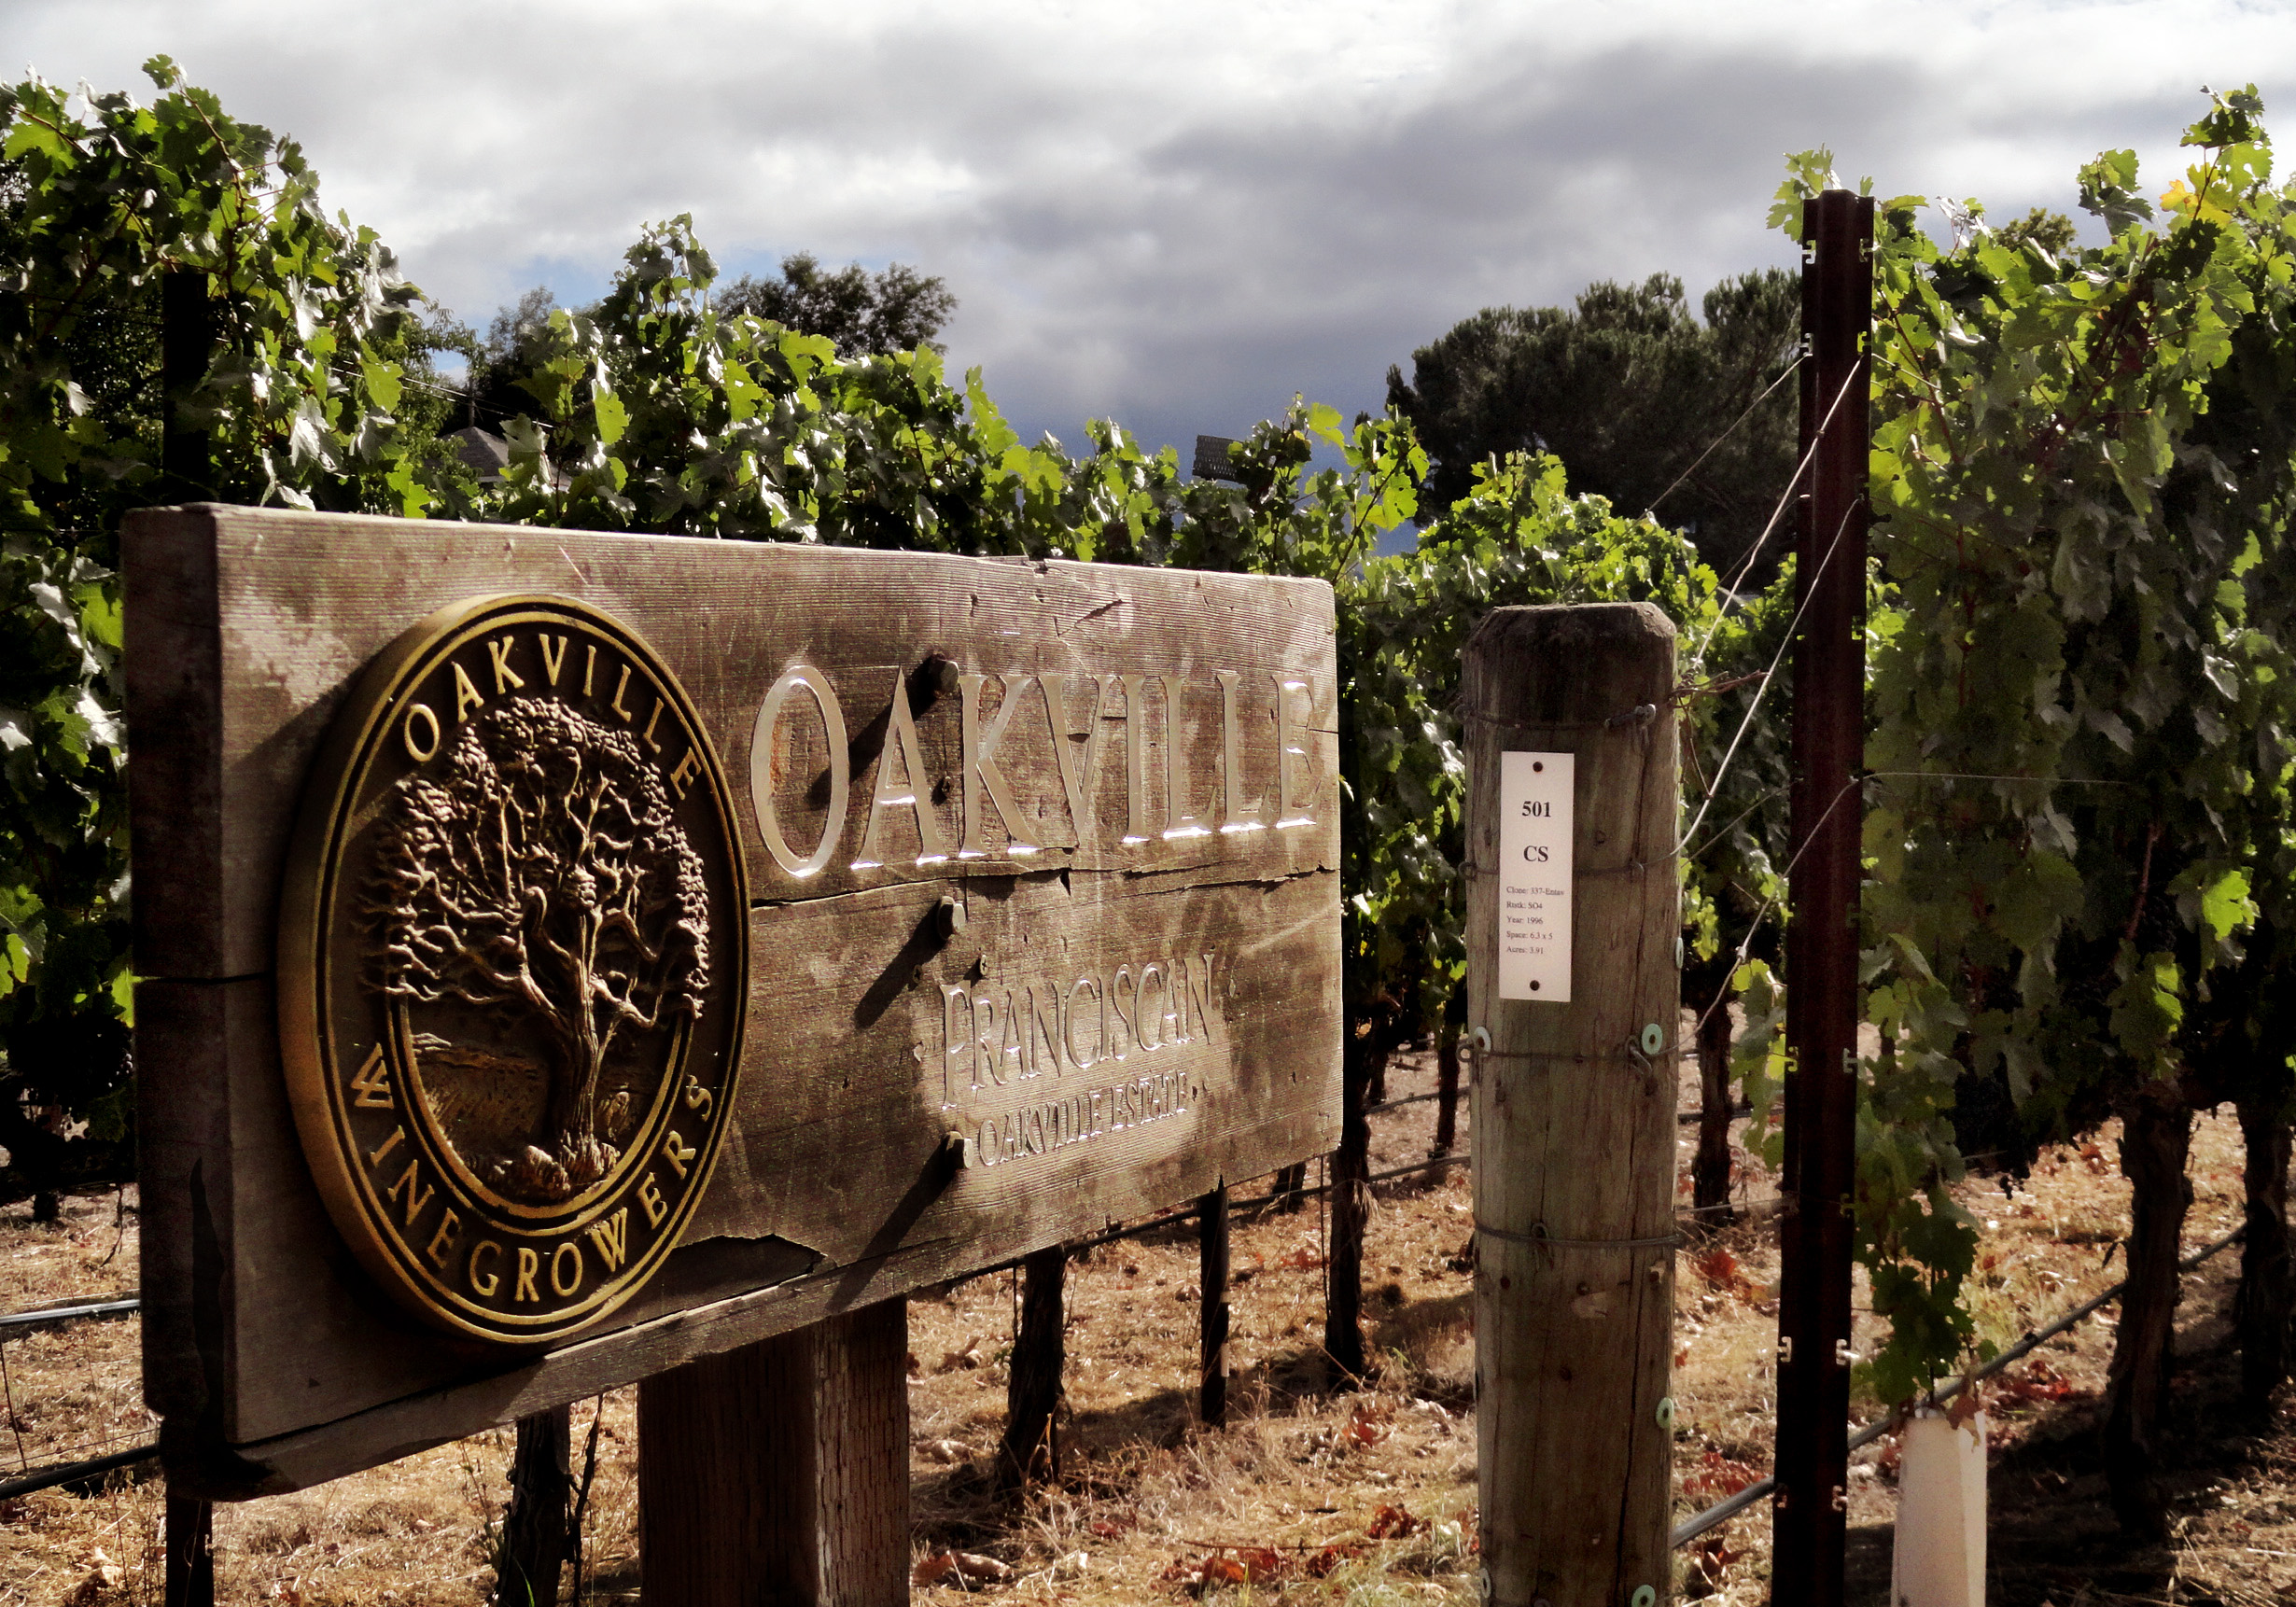 Oakville Estate Clone 337 Cabernet Sauvignon in Napa Valley